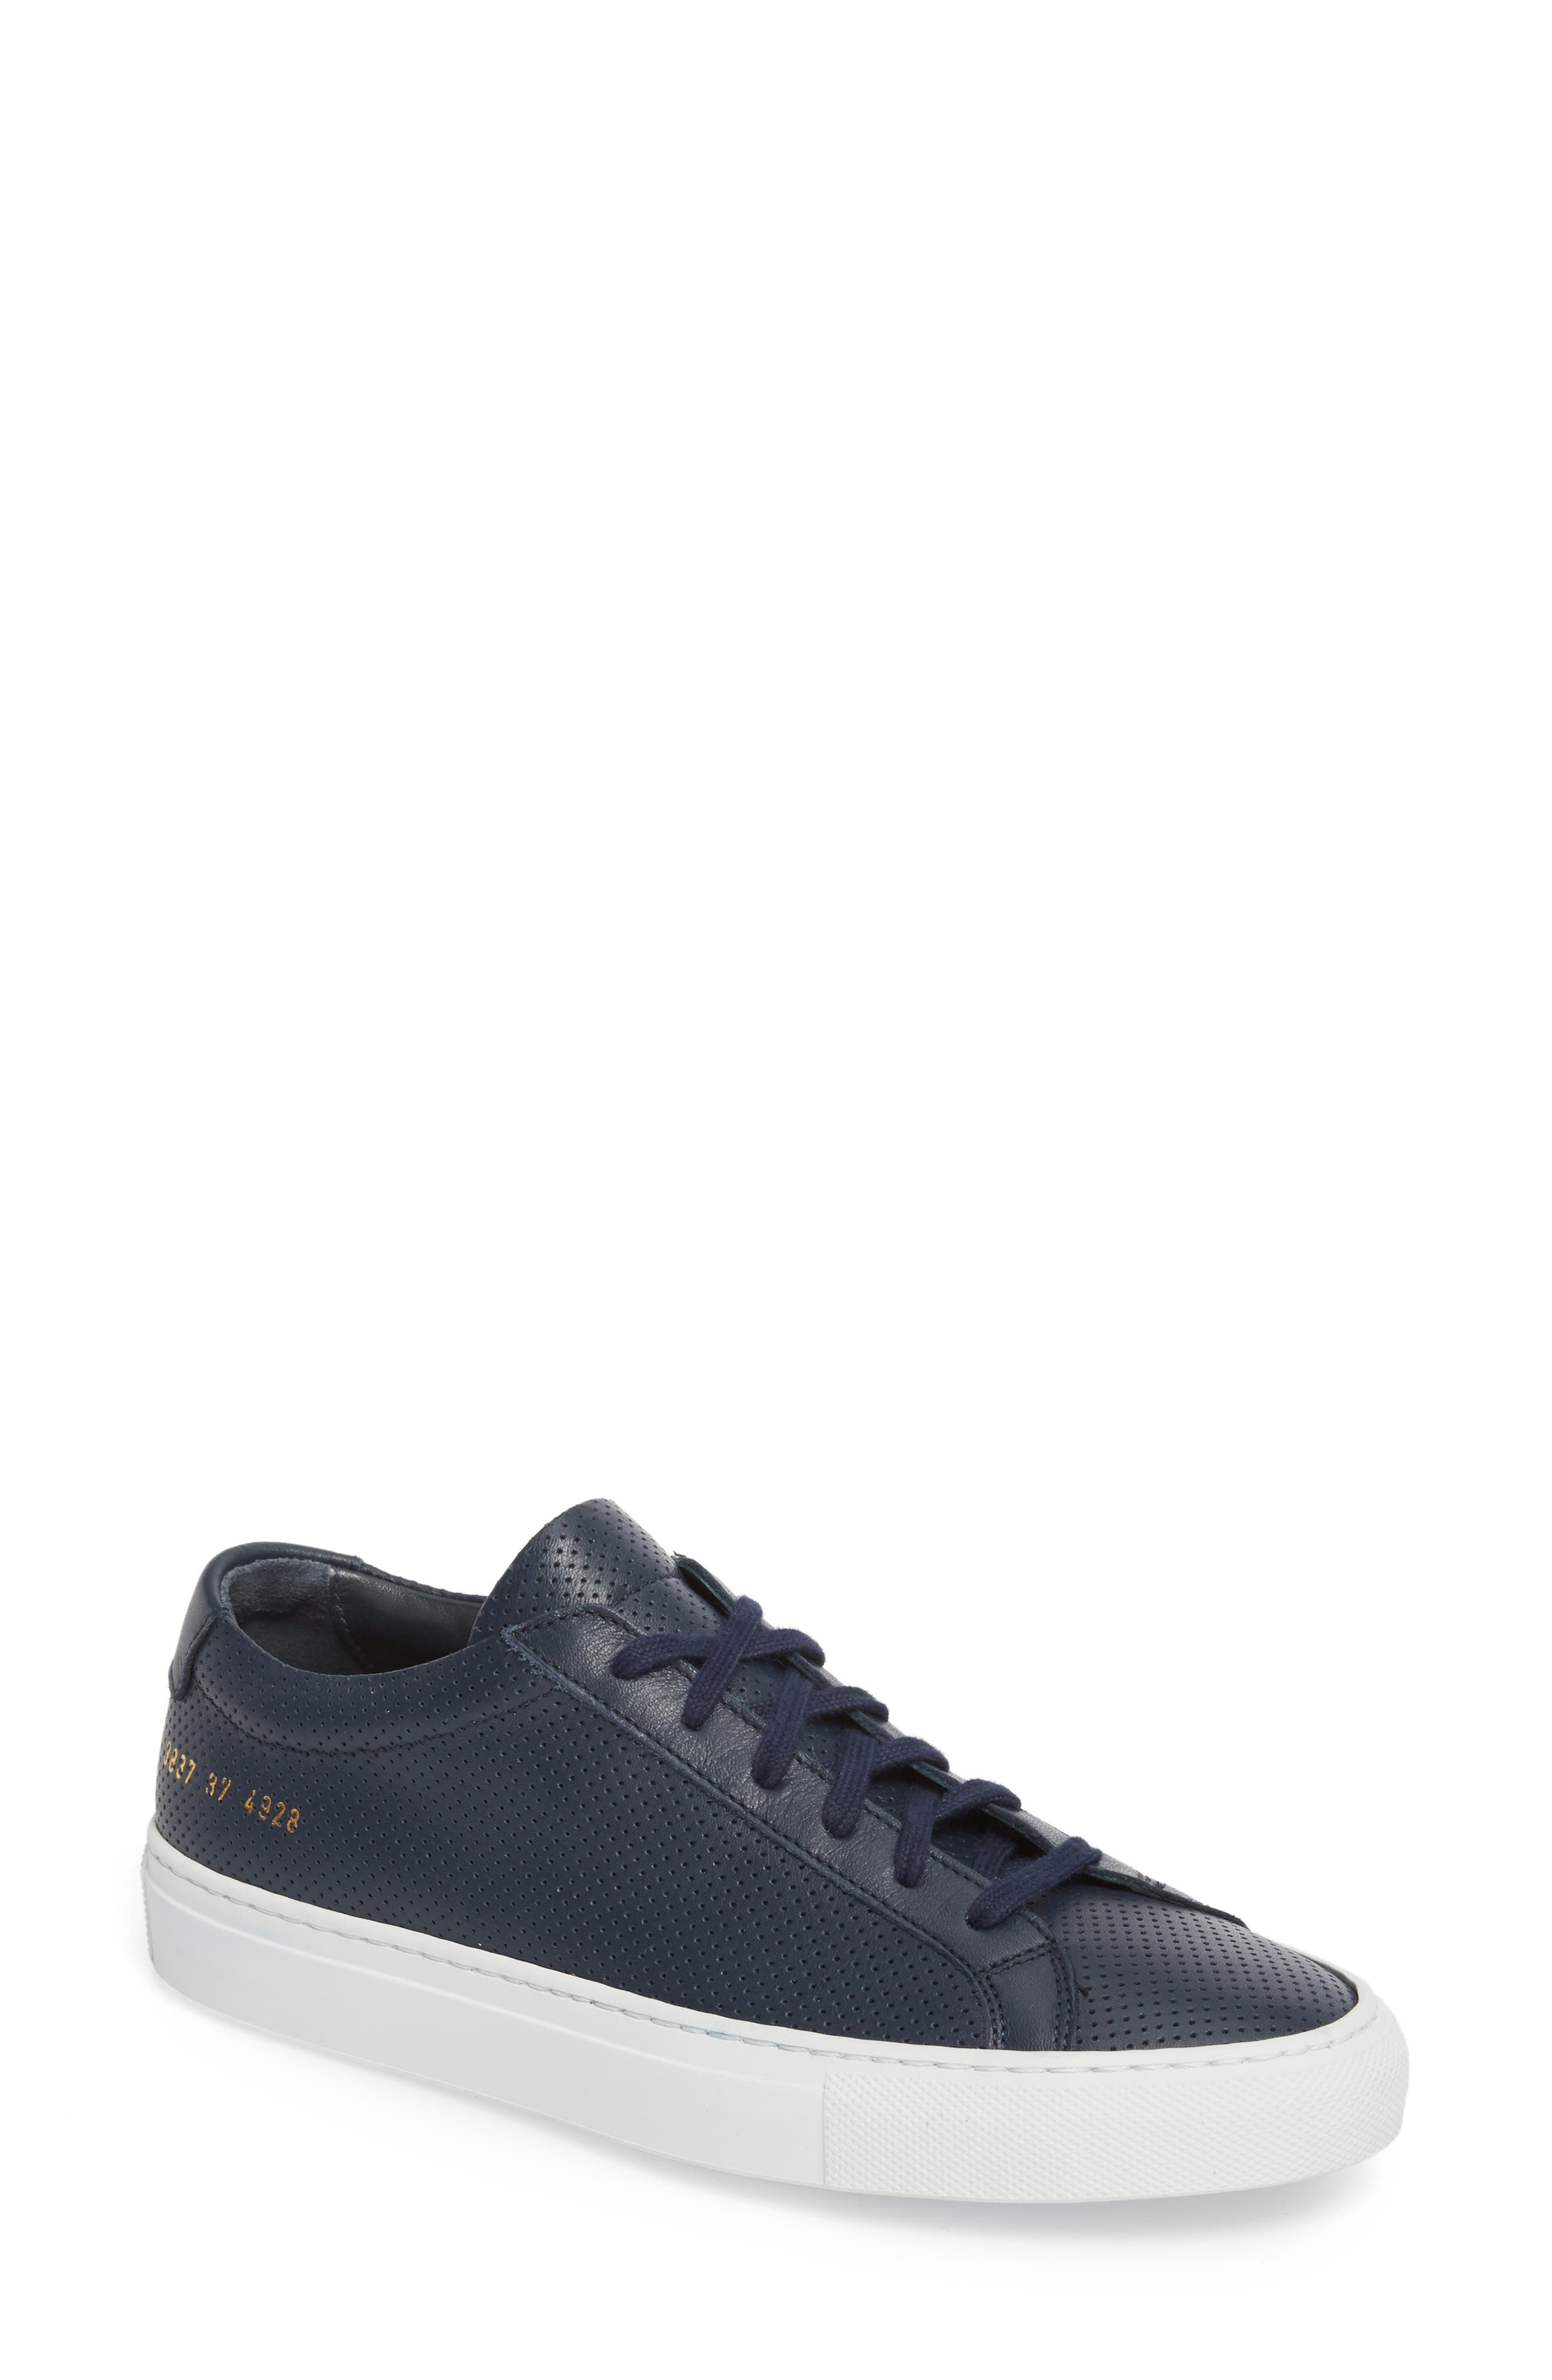 Original Achilles Perforated Low Sneaker,                         Main,                         color, Navy